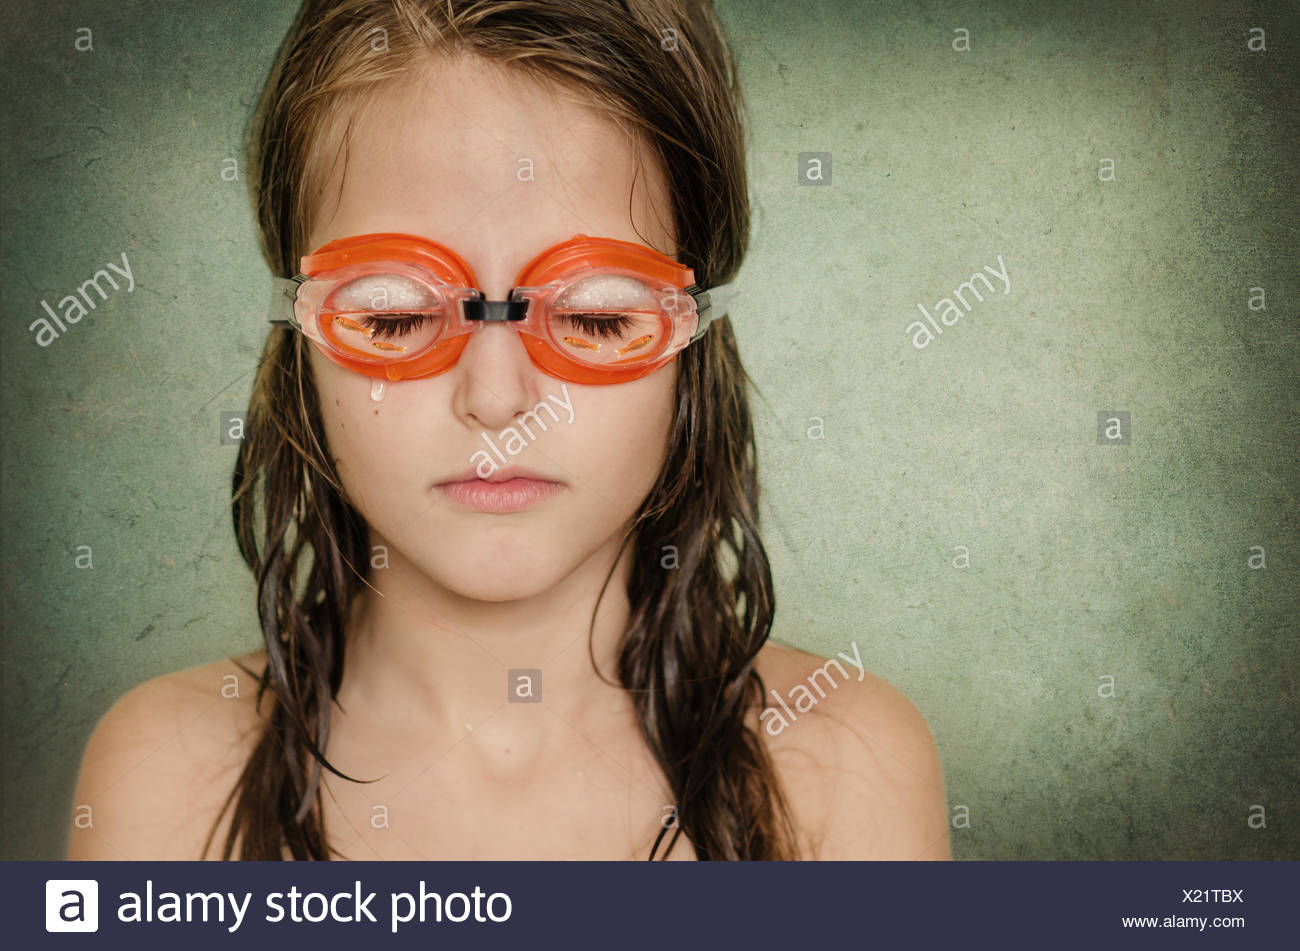 Portrait of a girl with her eyes closed wearing swimming goggles Stock Photo